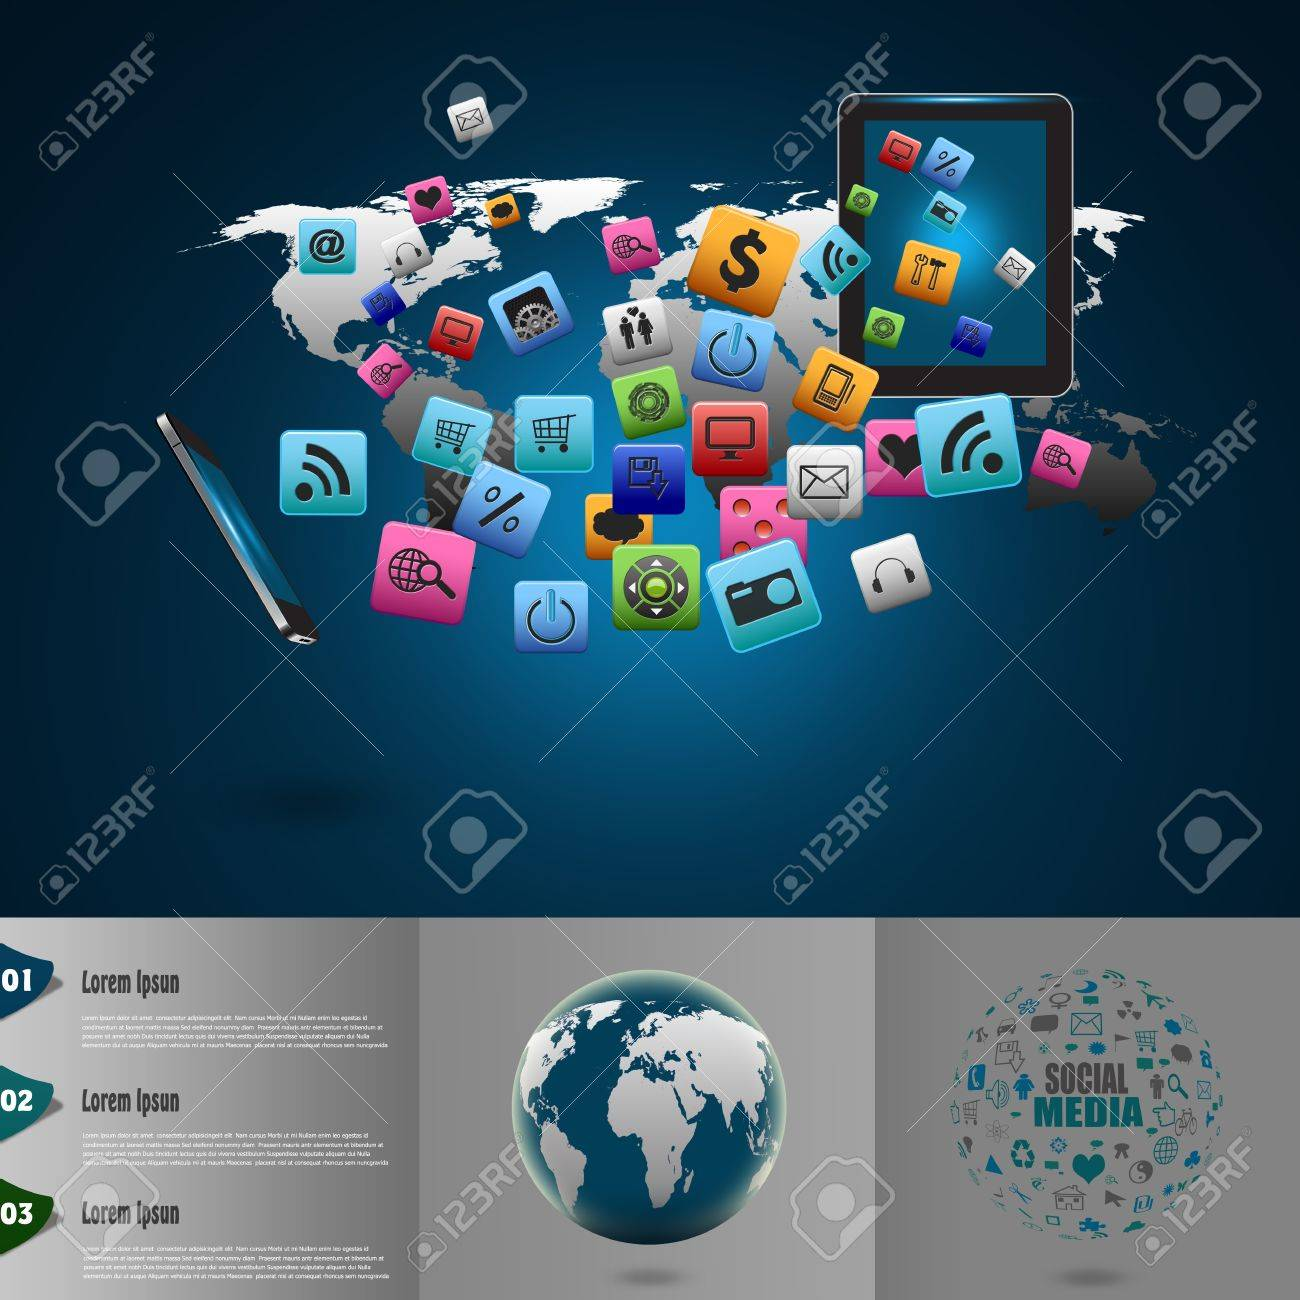 Creative tablet computer with mobile phones cloud of colorful application icon Stock Photo - 21057026